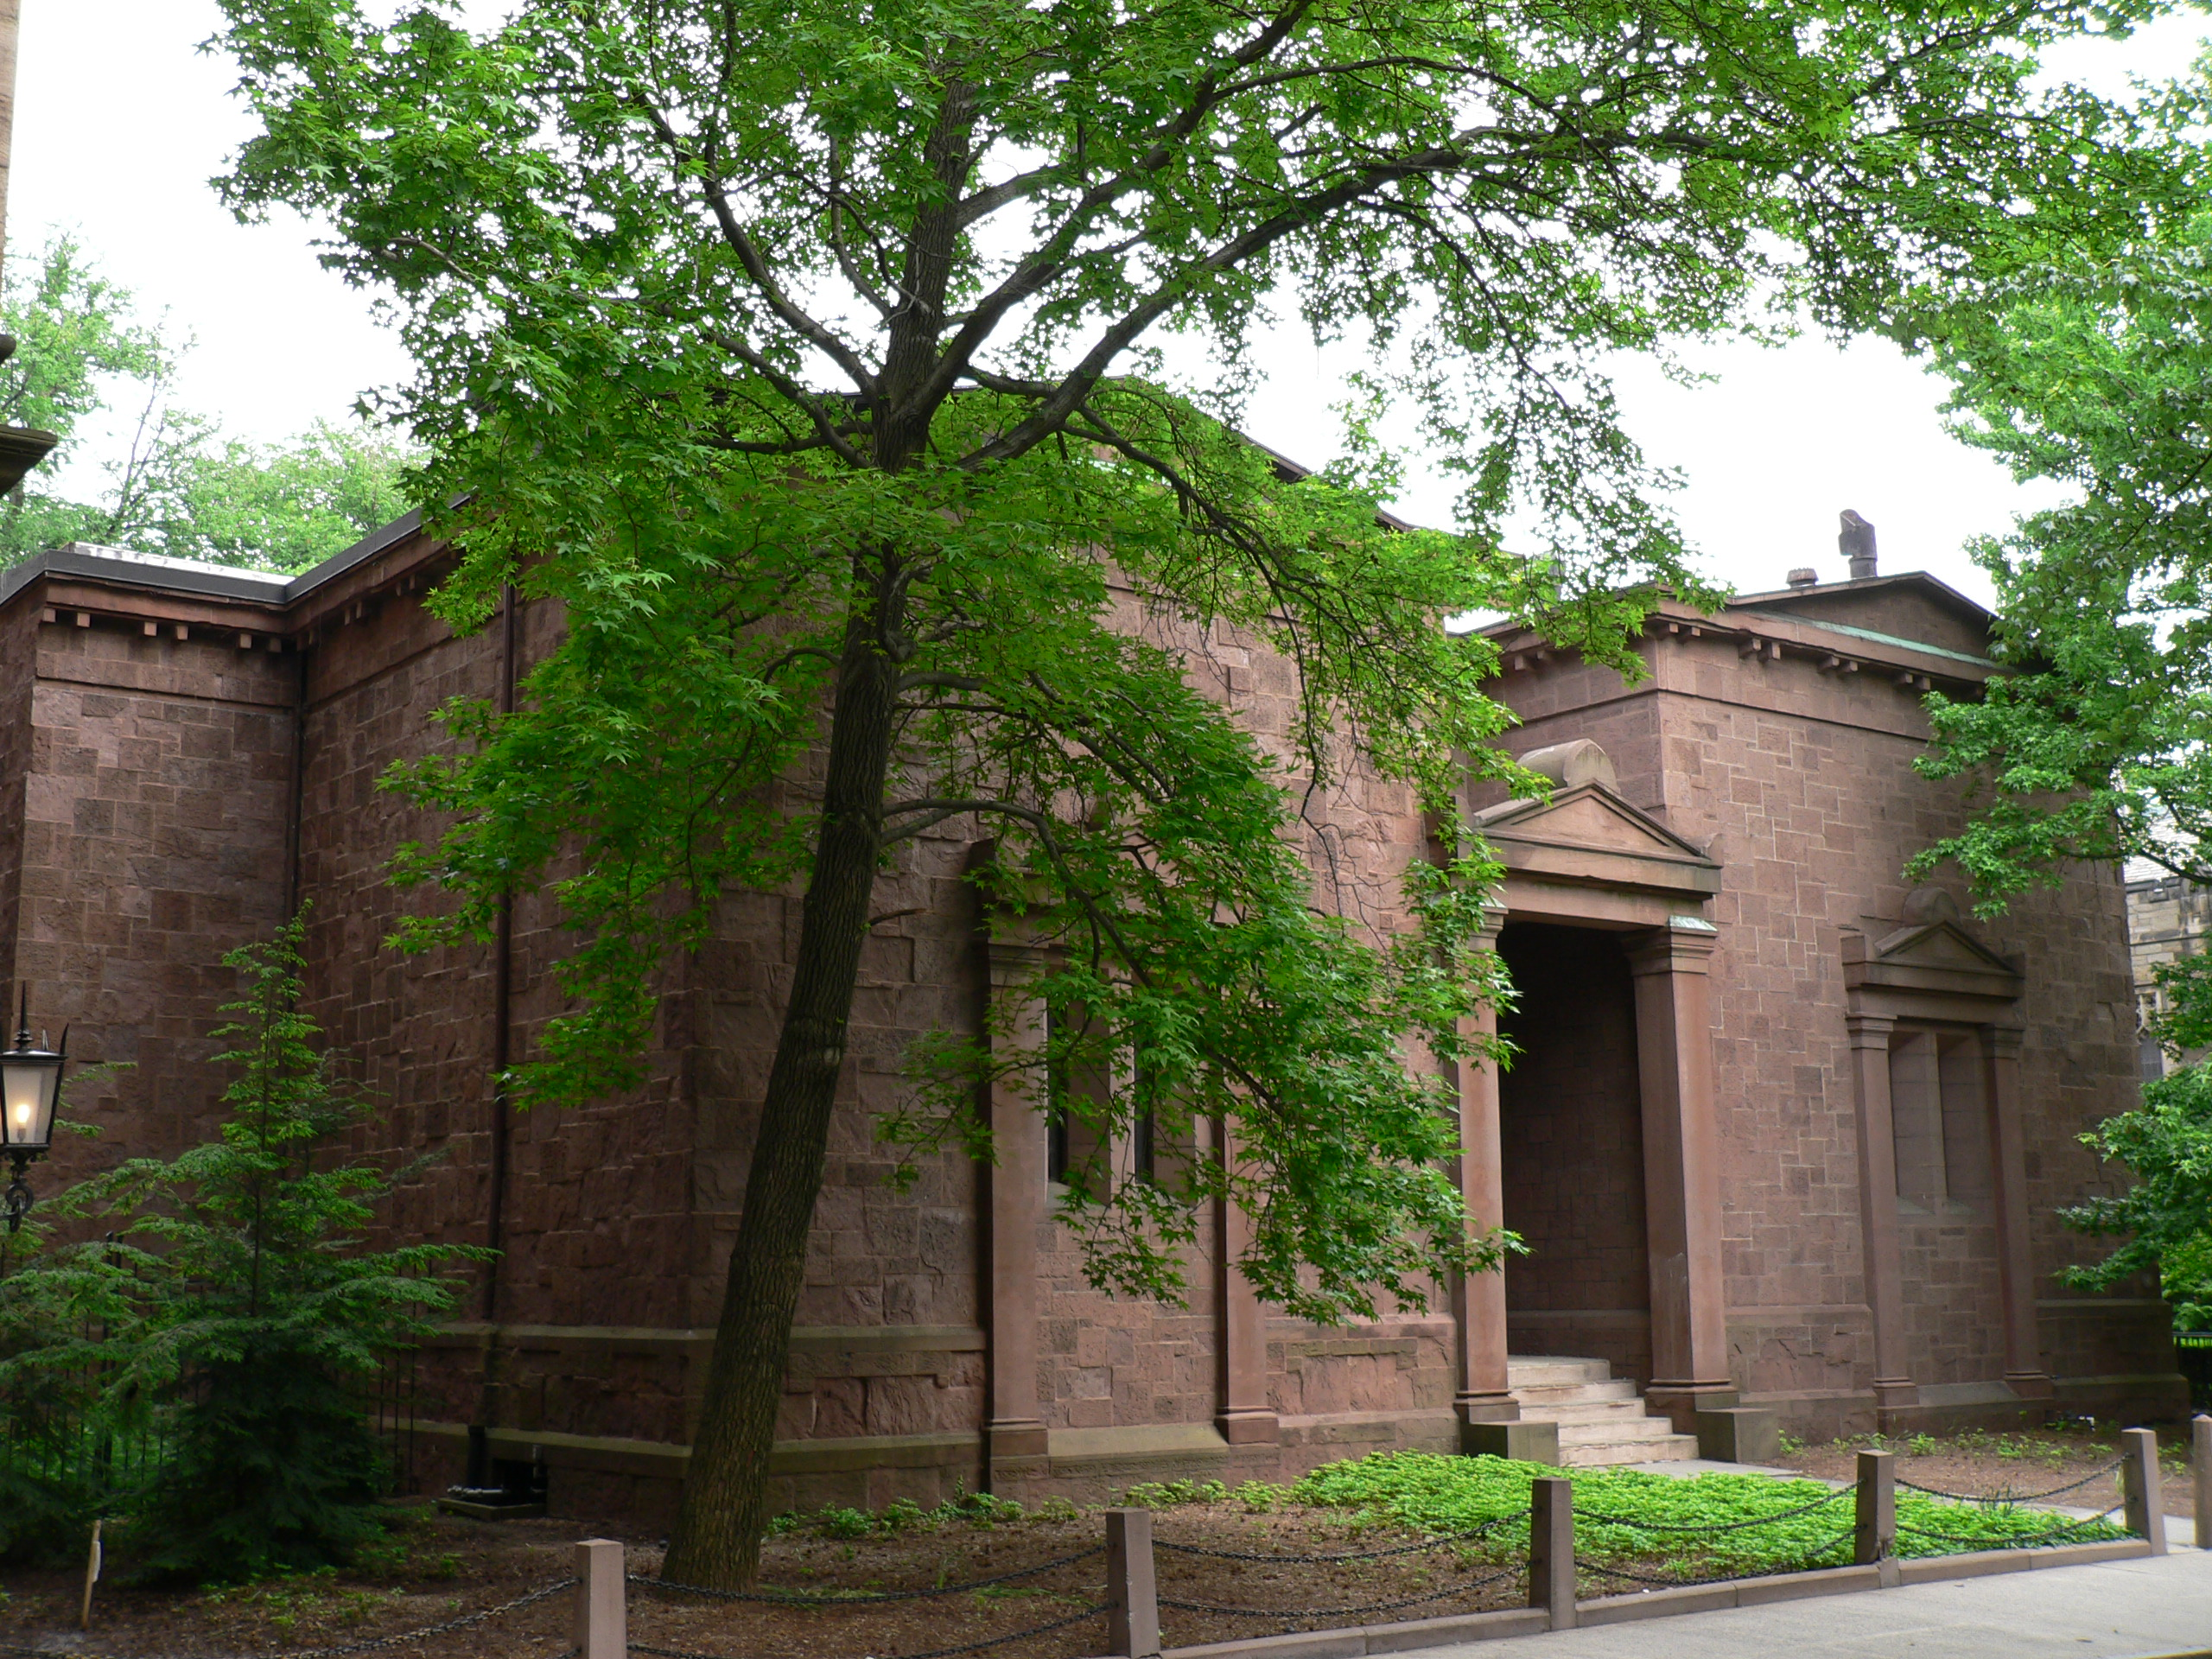 The Tomb, the windowless headquarters of the secret society, Skull and Bones, on the campus of Yale University. Photo by BoolaBoola2 from Wikimedia Commons.